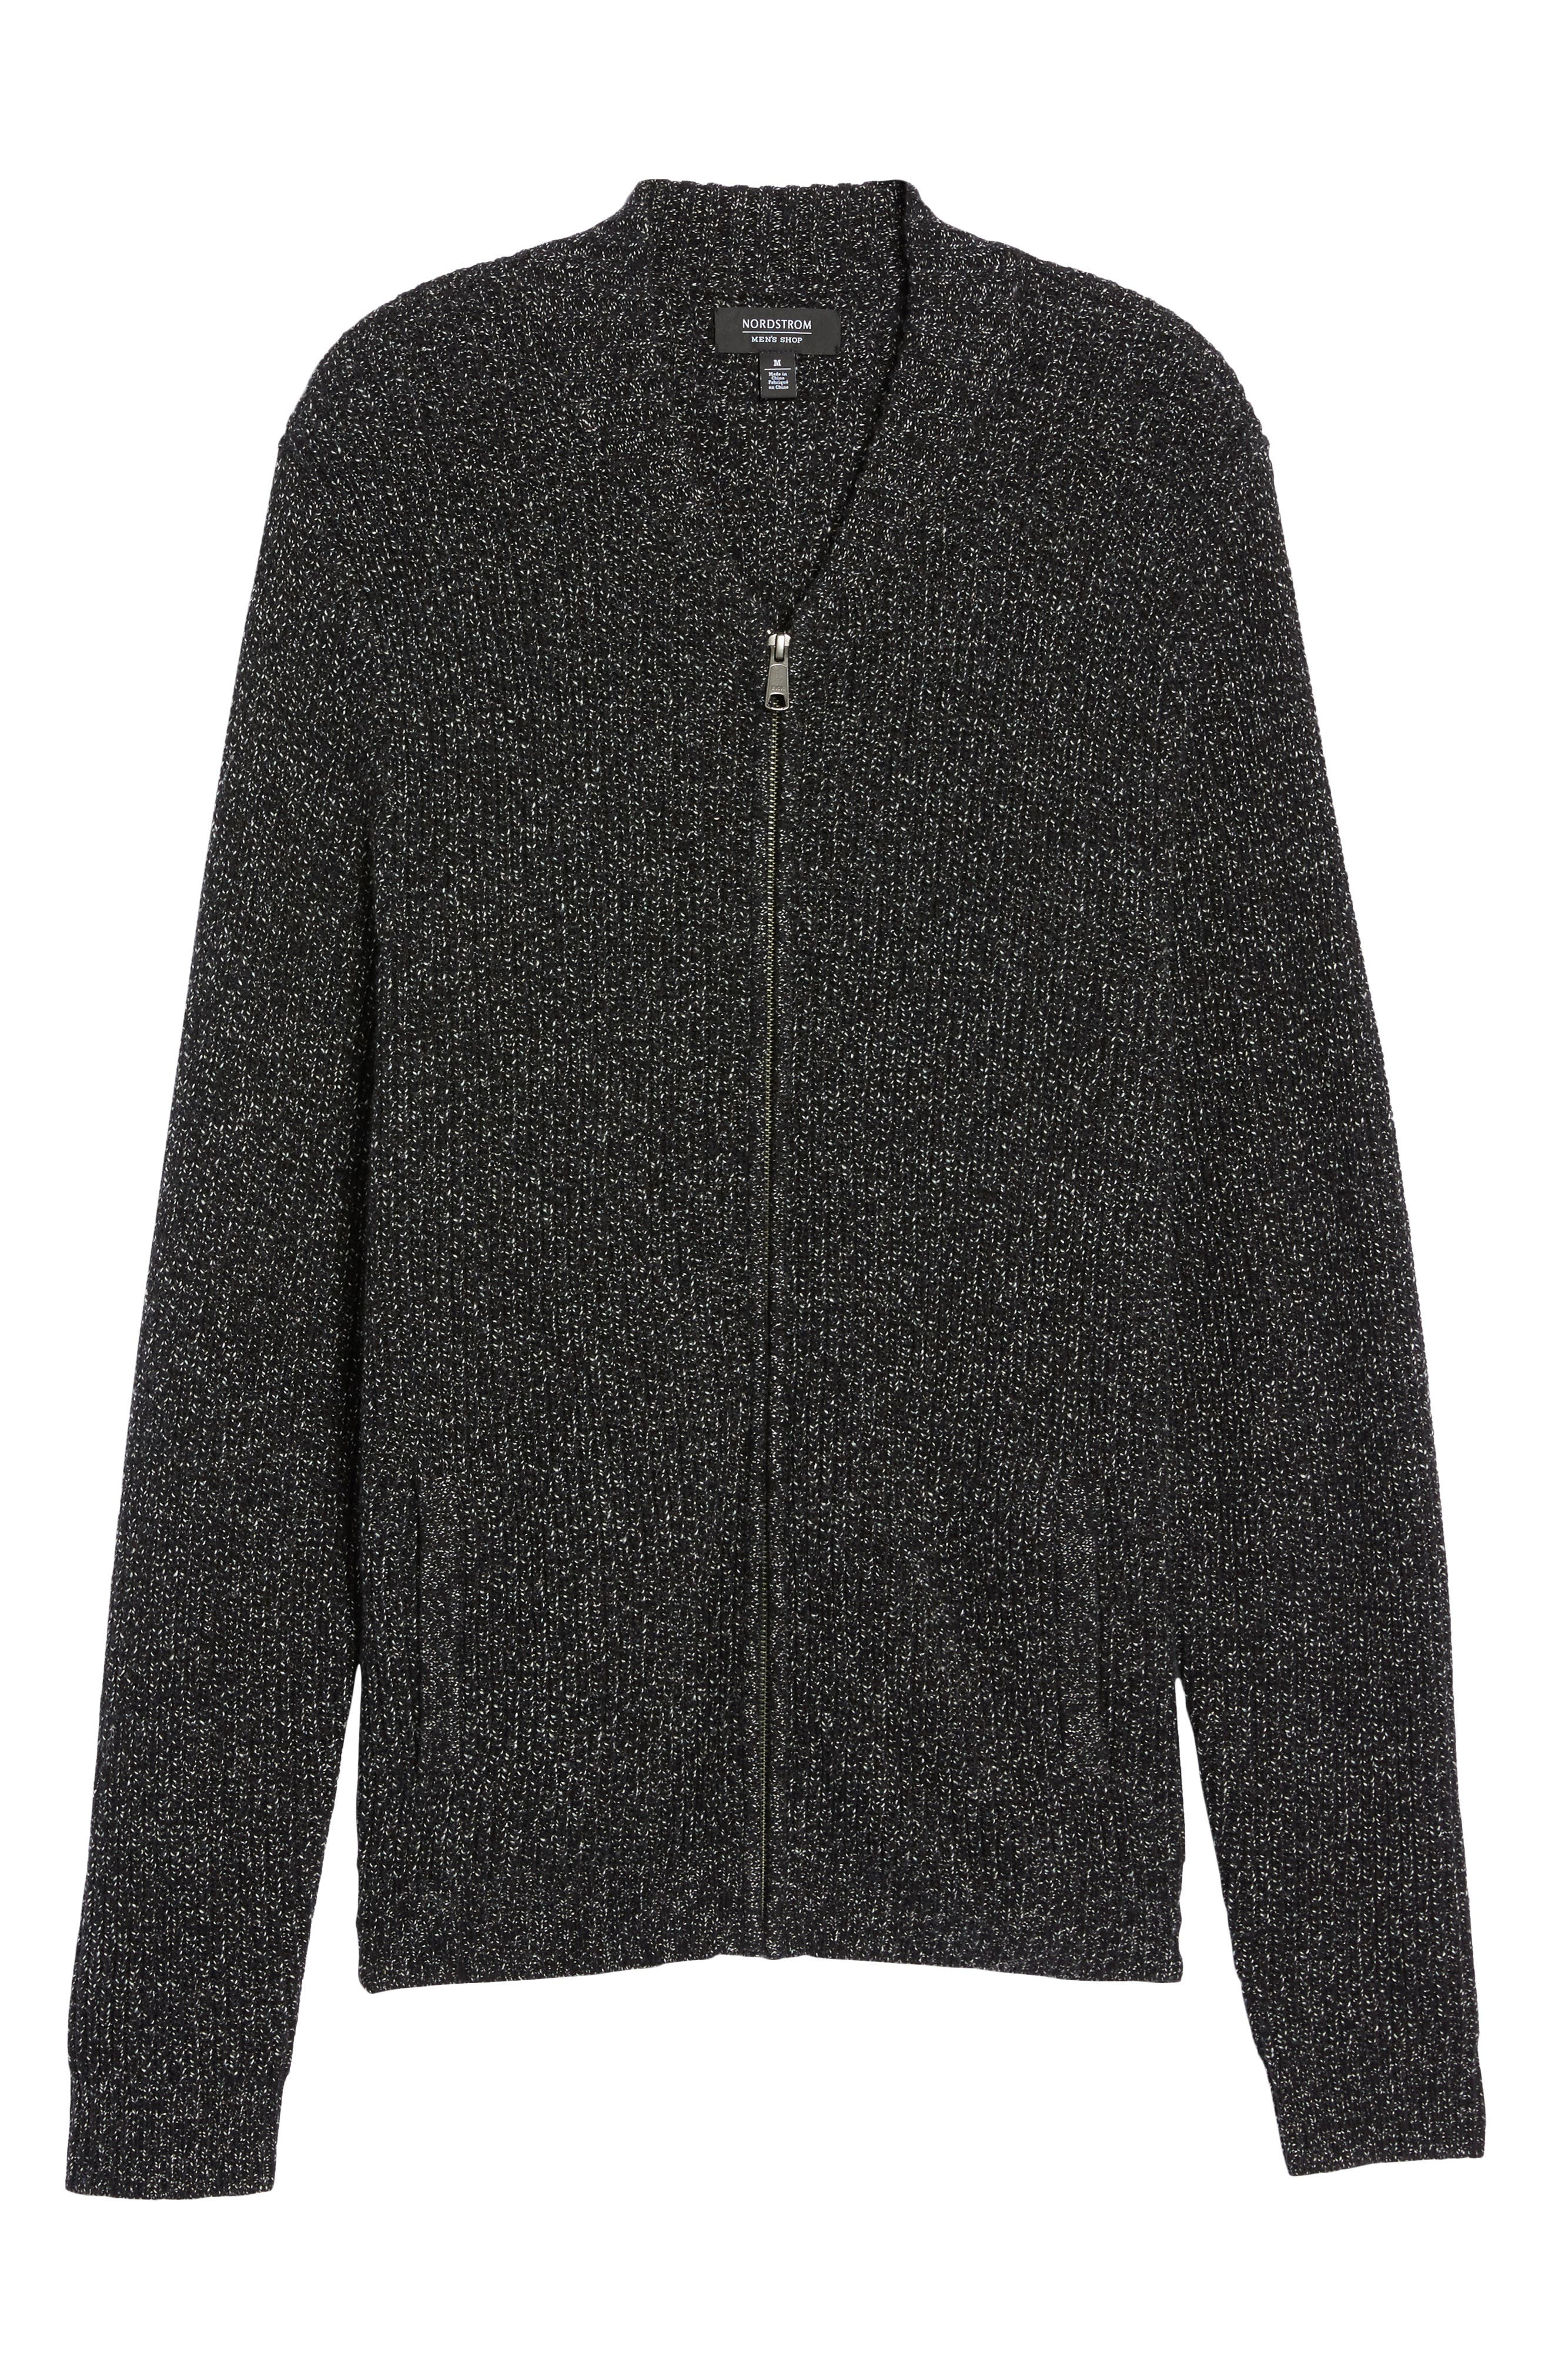 Zip Front Cardigan,                             Alternate thumbnail 6, color,                             001